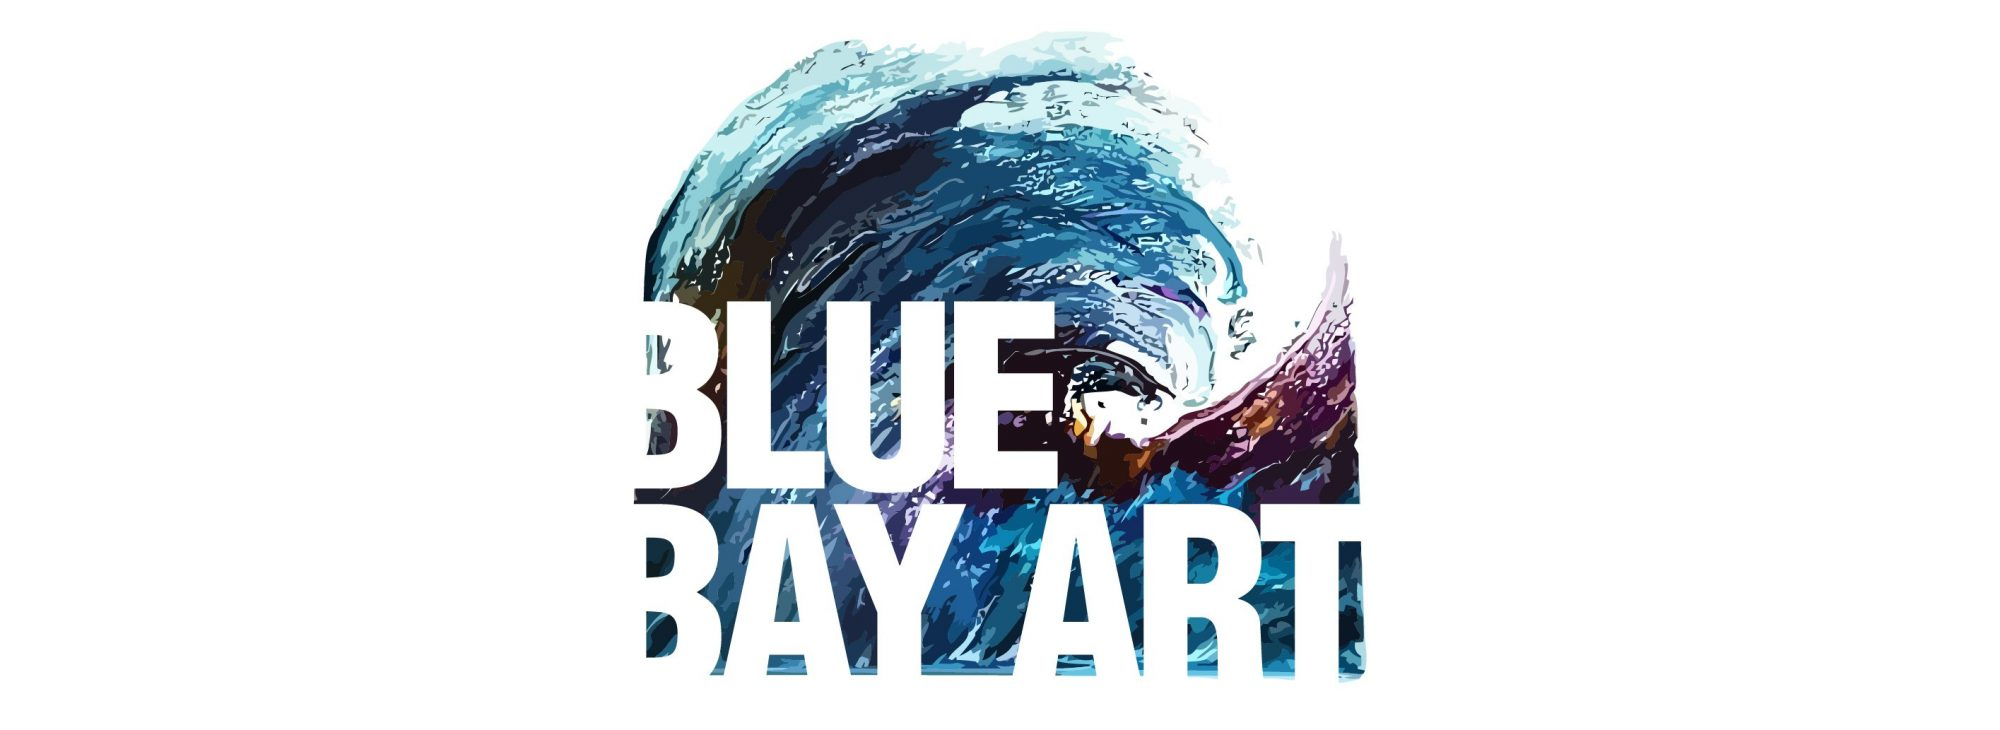 Blue Bay Art